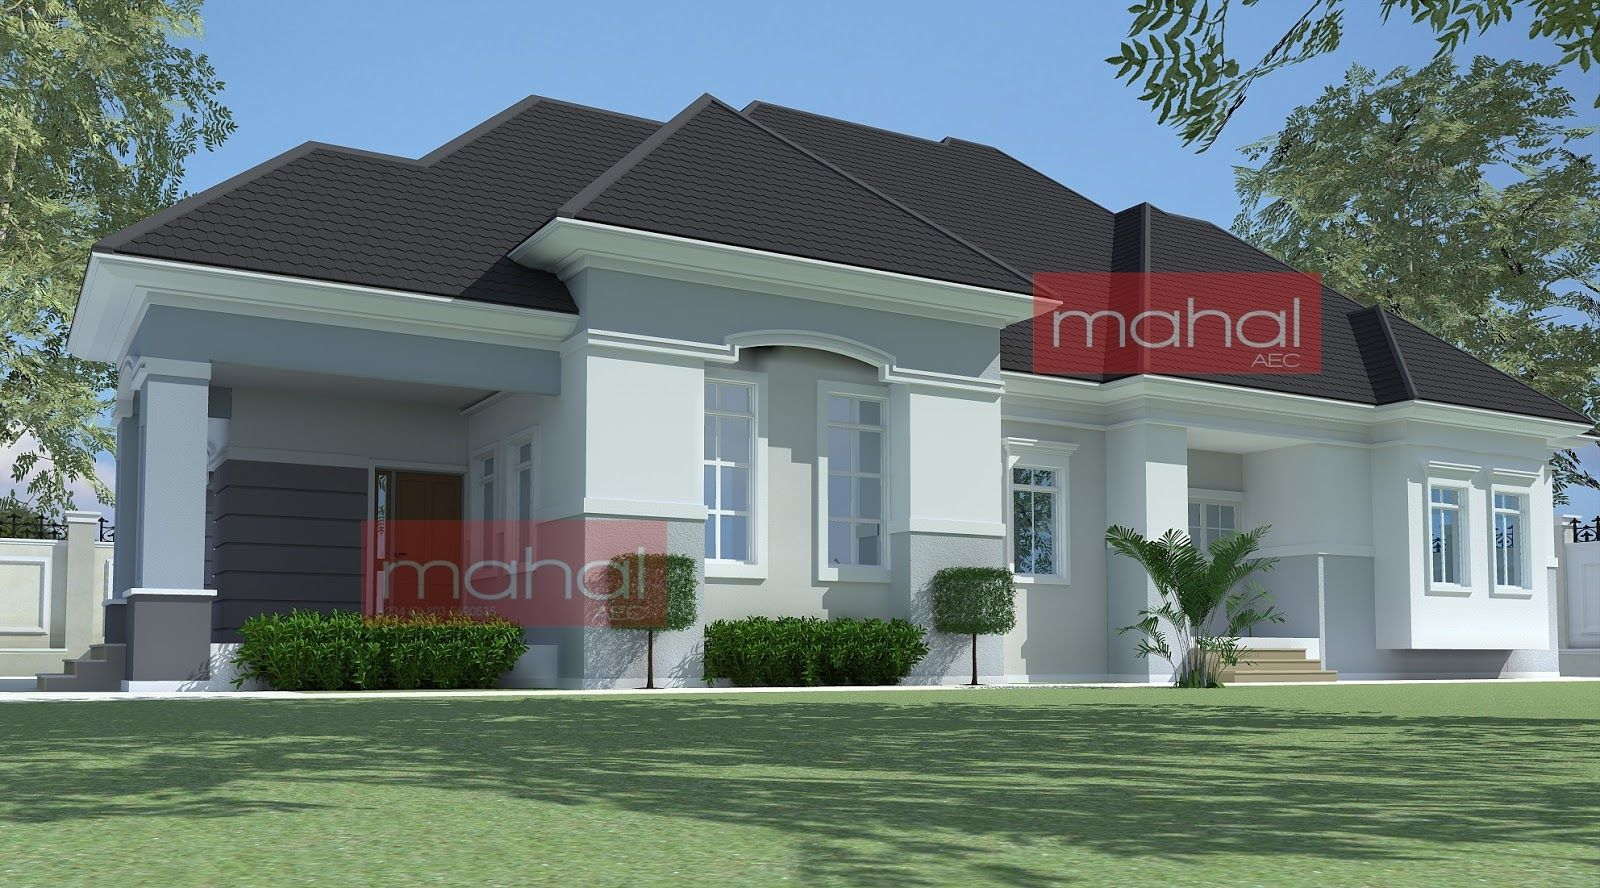 4 bedroom bungalow plan in nigeria 4 bedroom bungalow house plans nigerian design hot Buy house plans